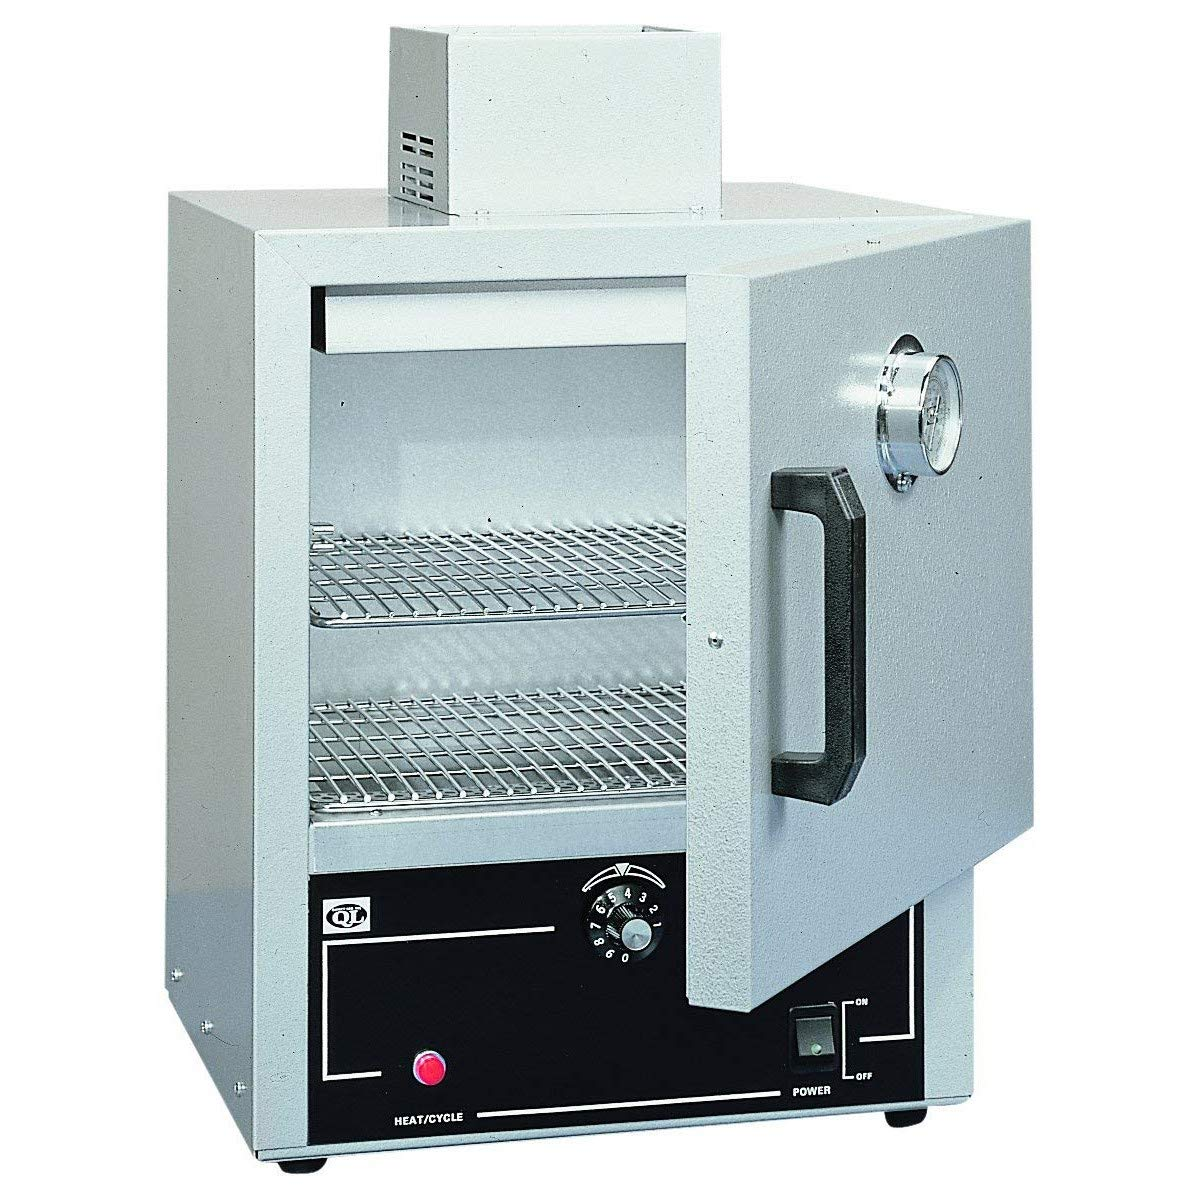 Quincy Lab 40AF Steel Hydraulic Forced Air Gravity Convection Oven, 2.86 Cubic feet, 120V, 1500W